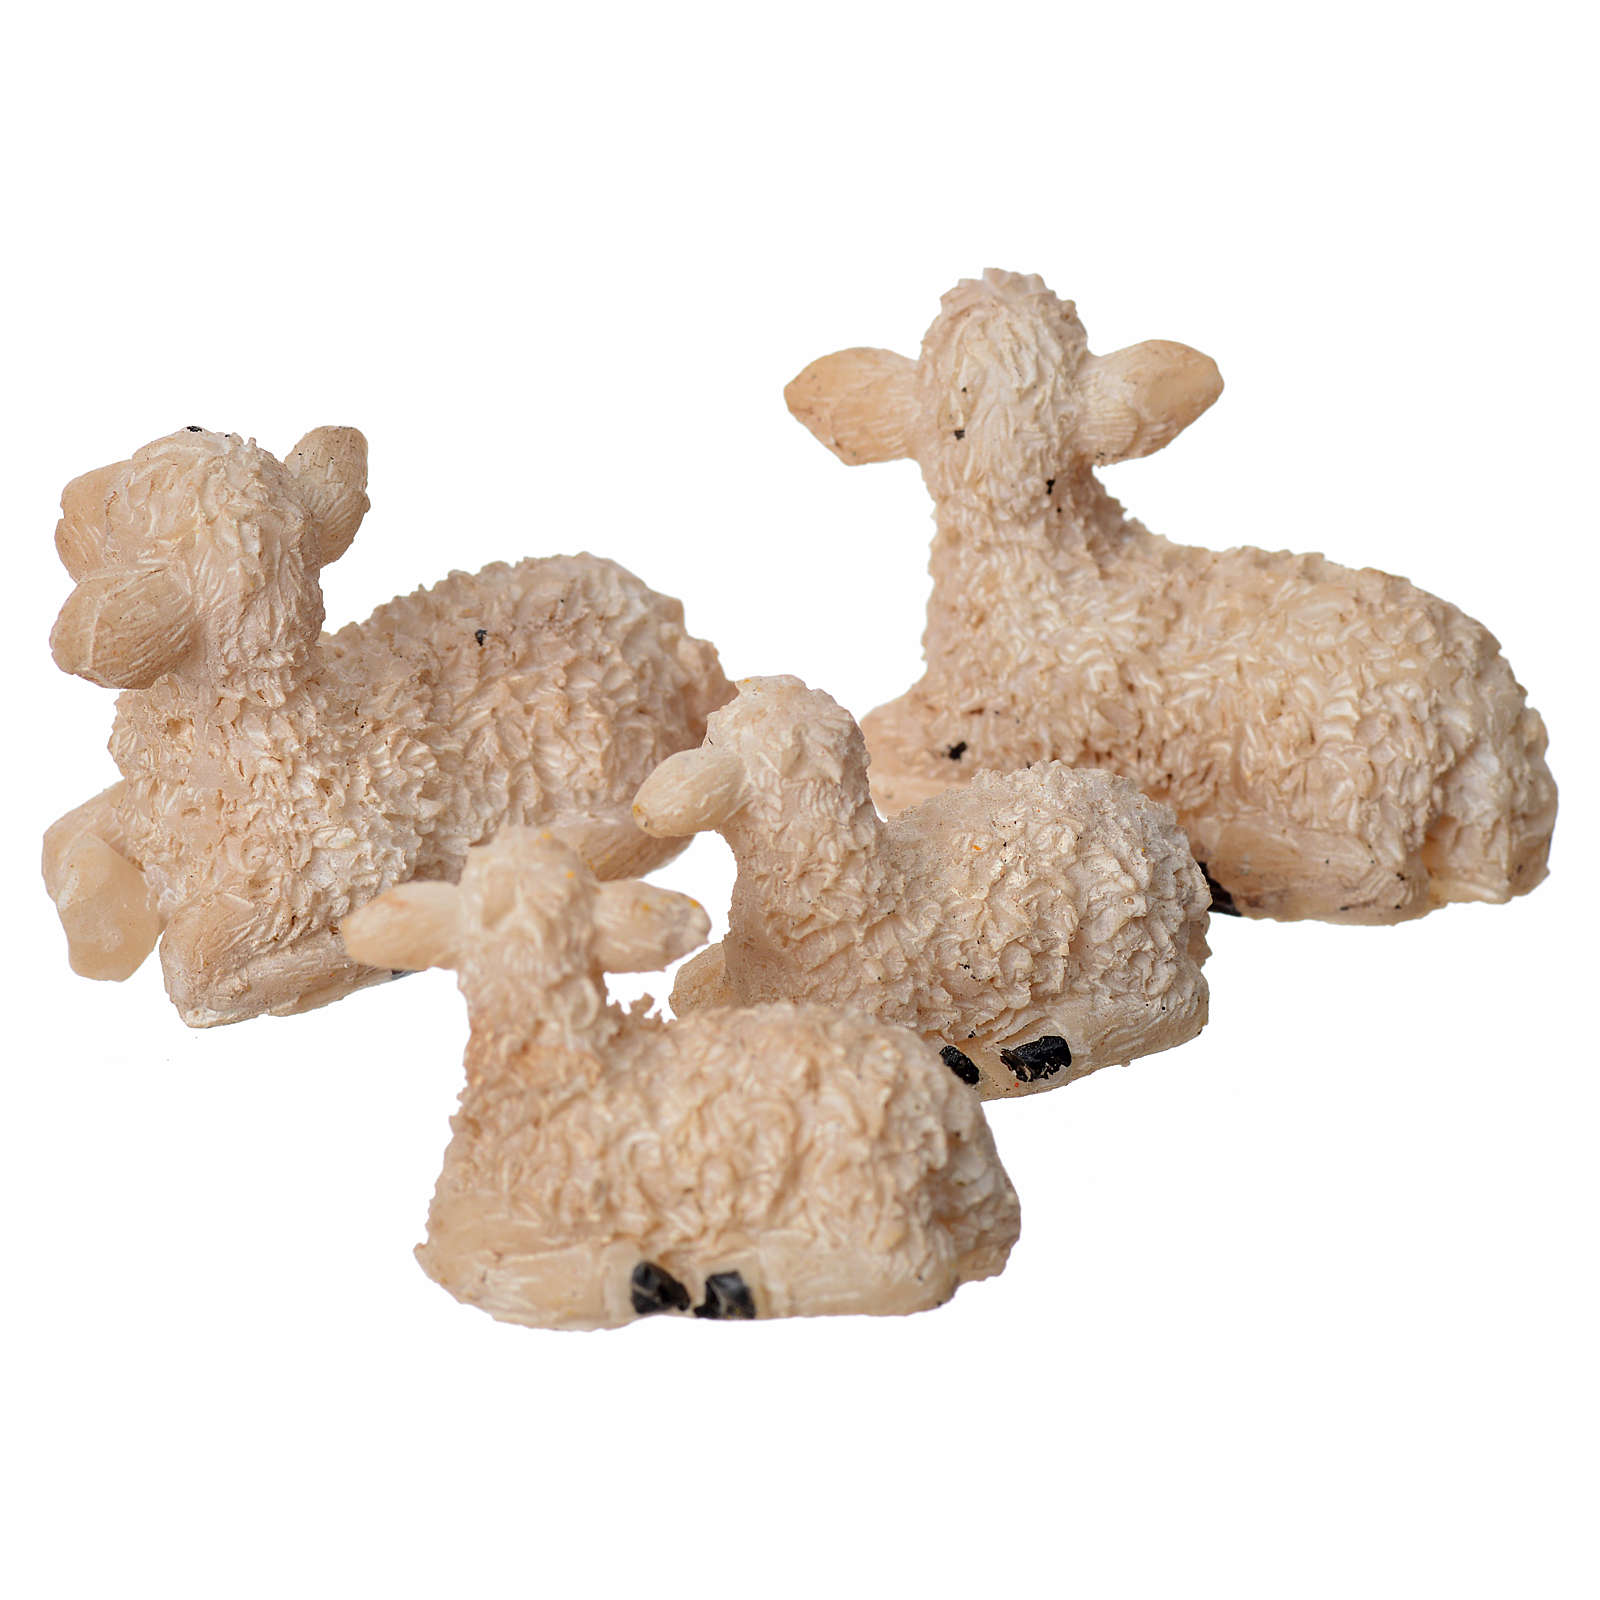 Nativity figurine, resin sheep, 4 pieces 8cm 3